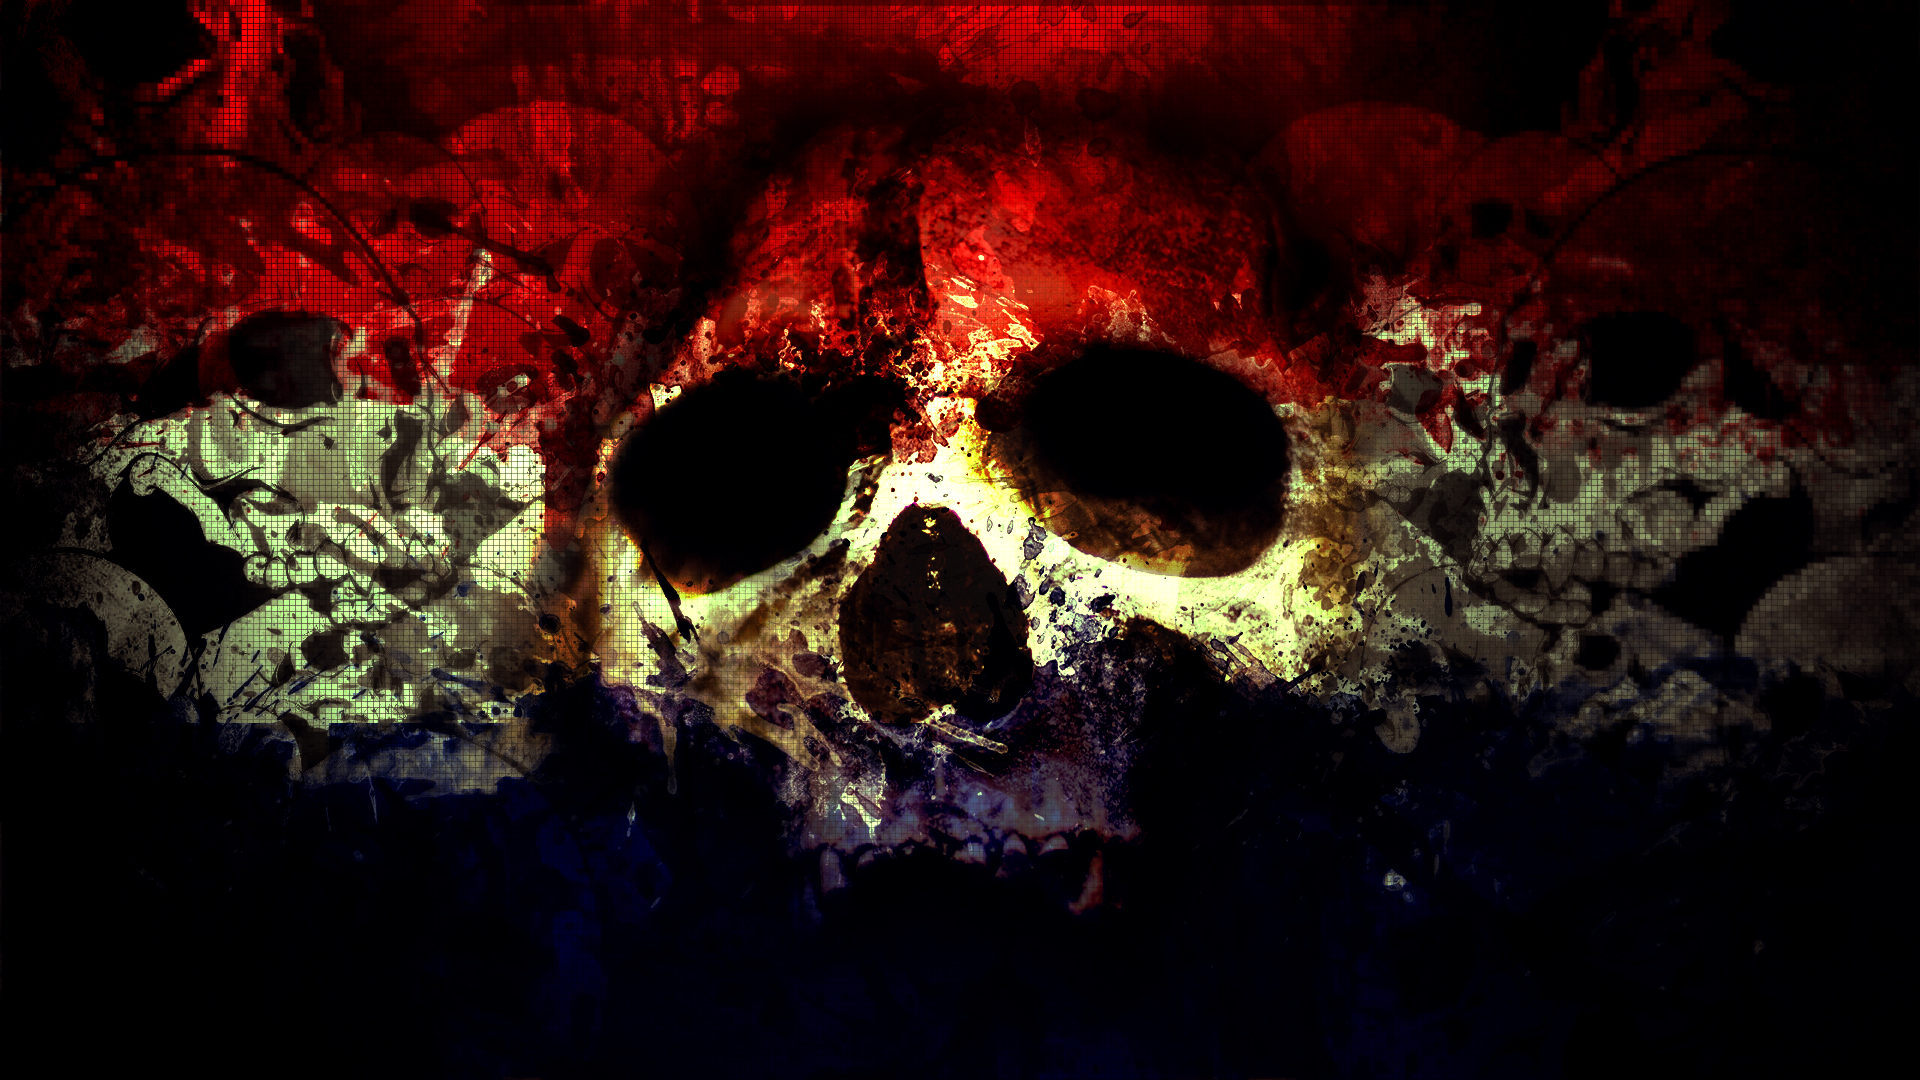 ... Skull Wallpaper HD; Skull Wallpapers